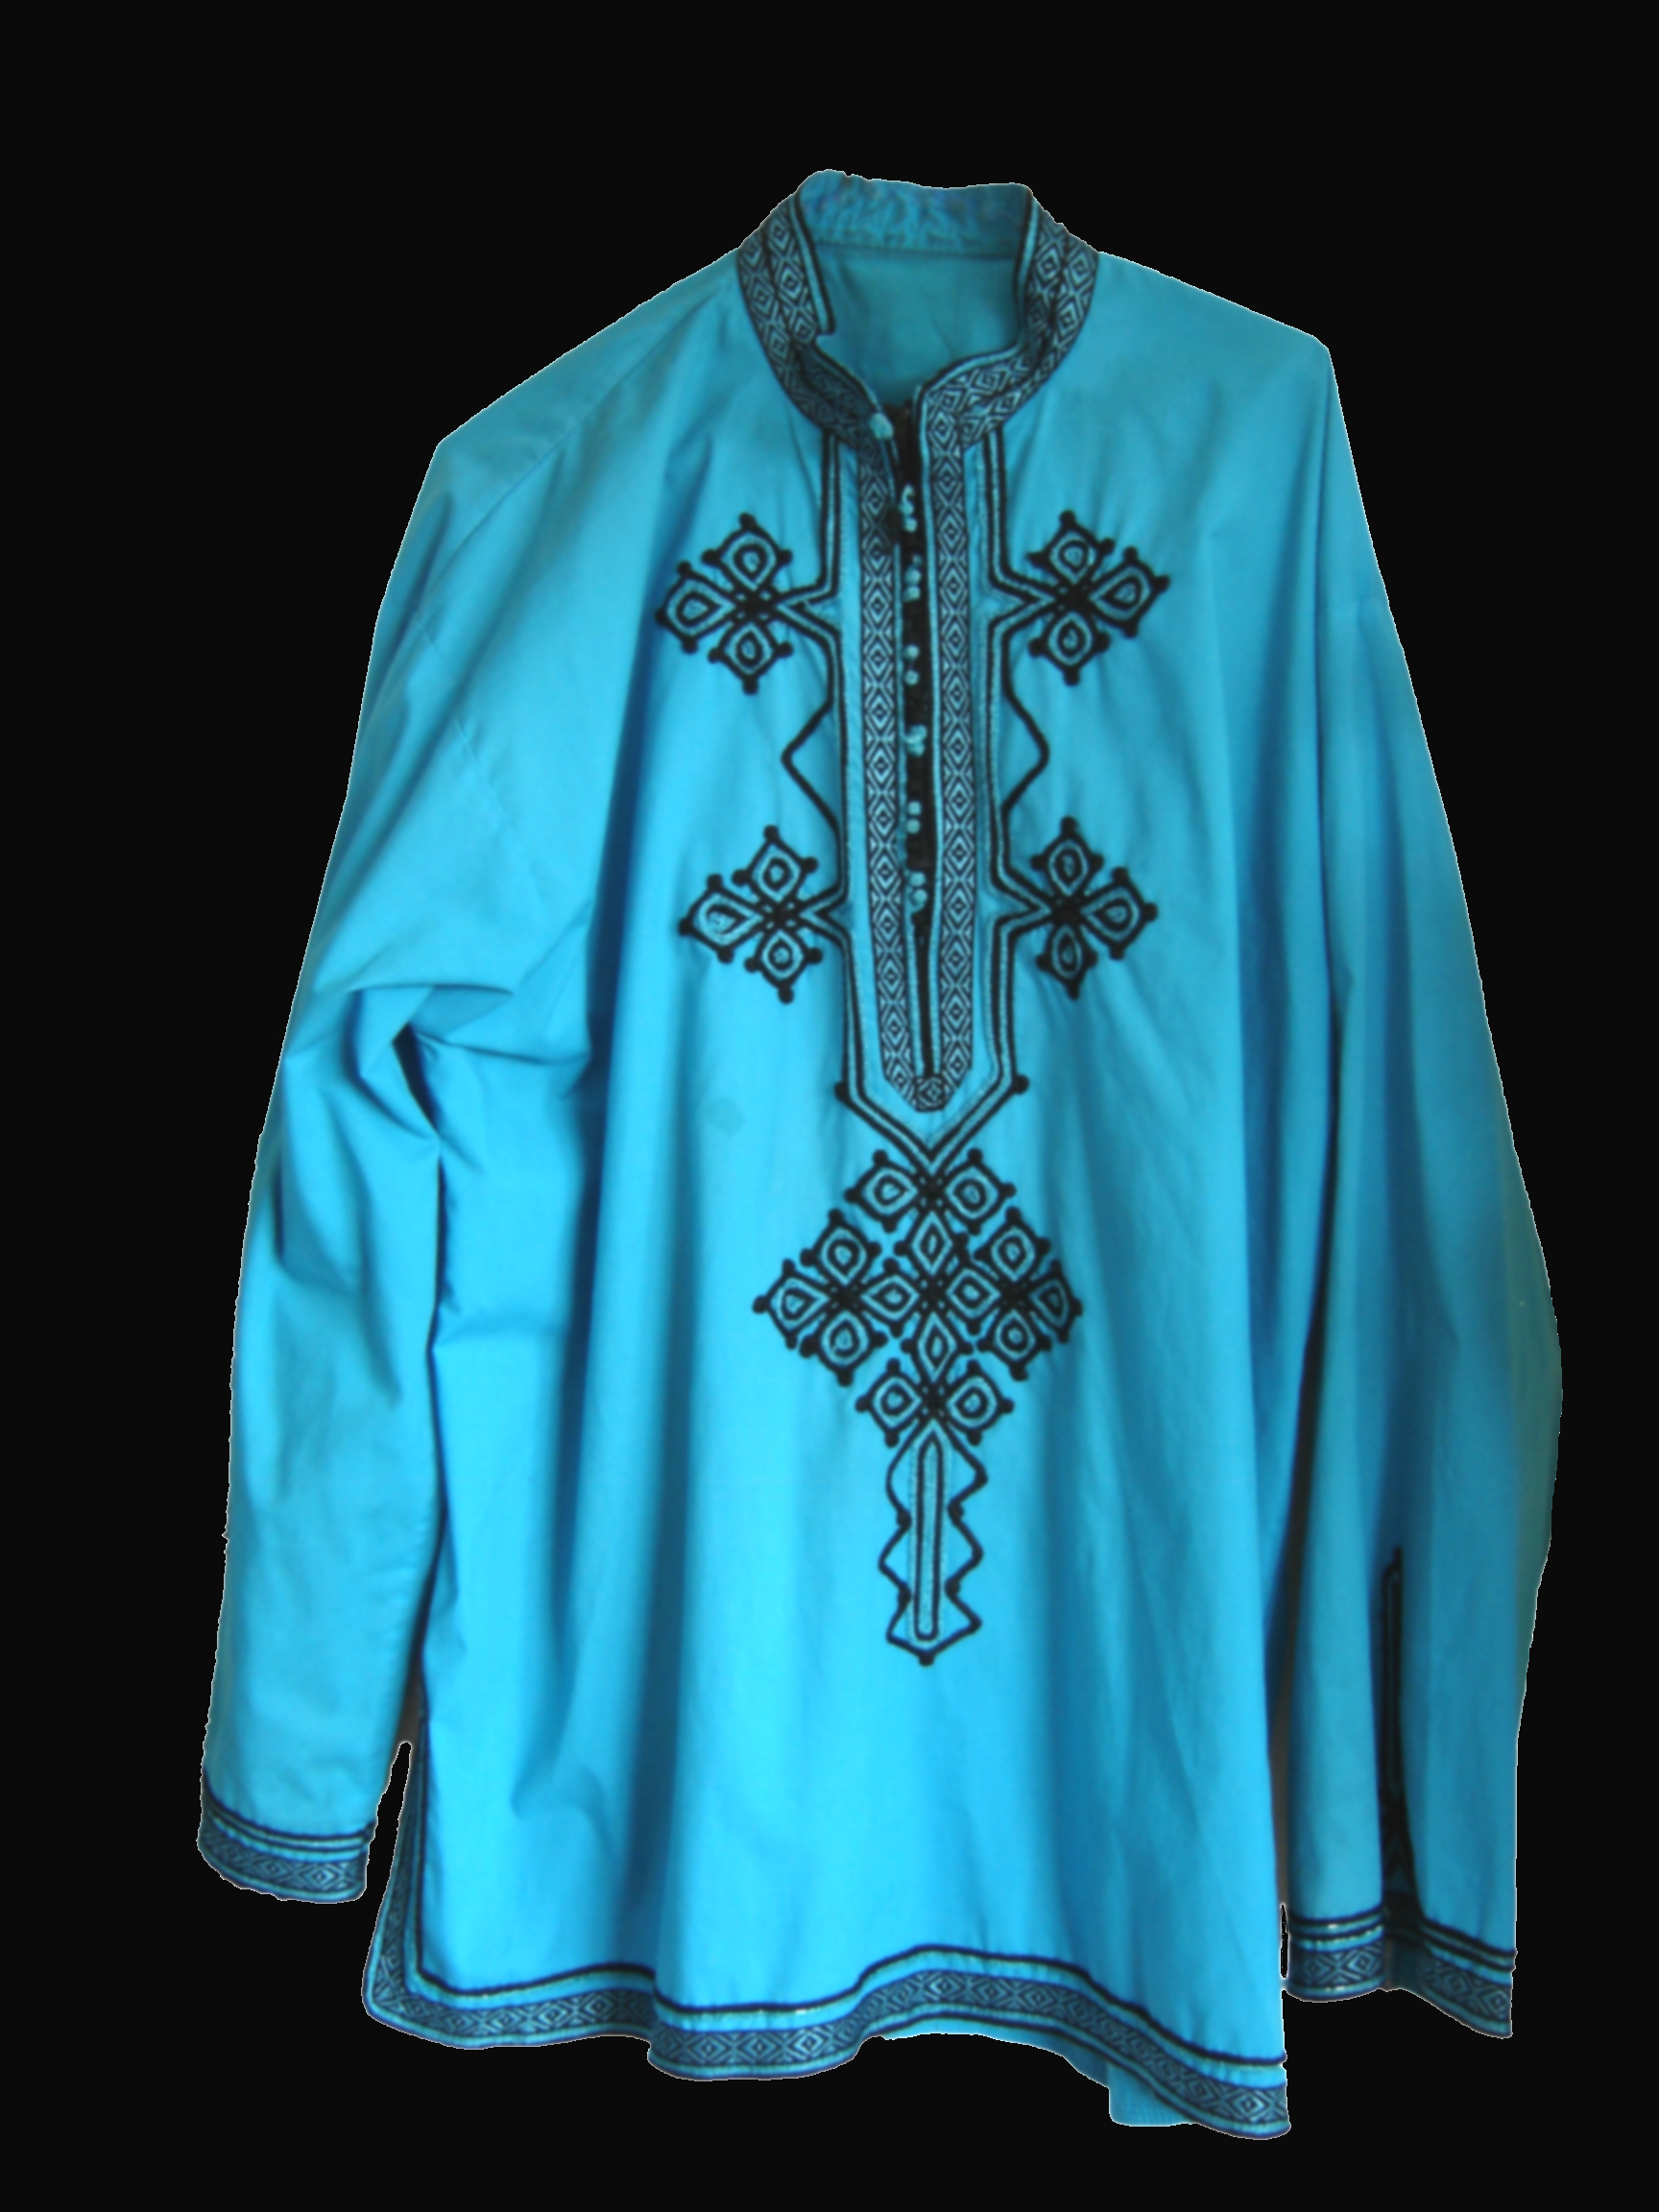 Turquoise Moroccan shirt